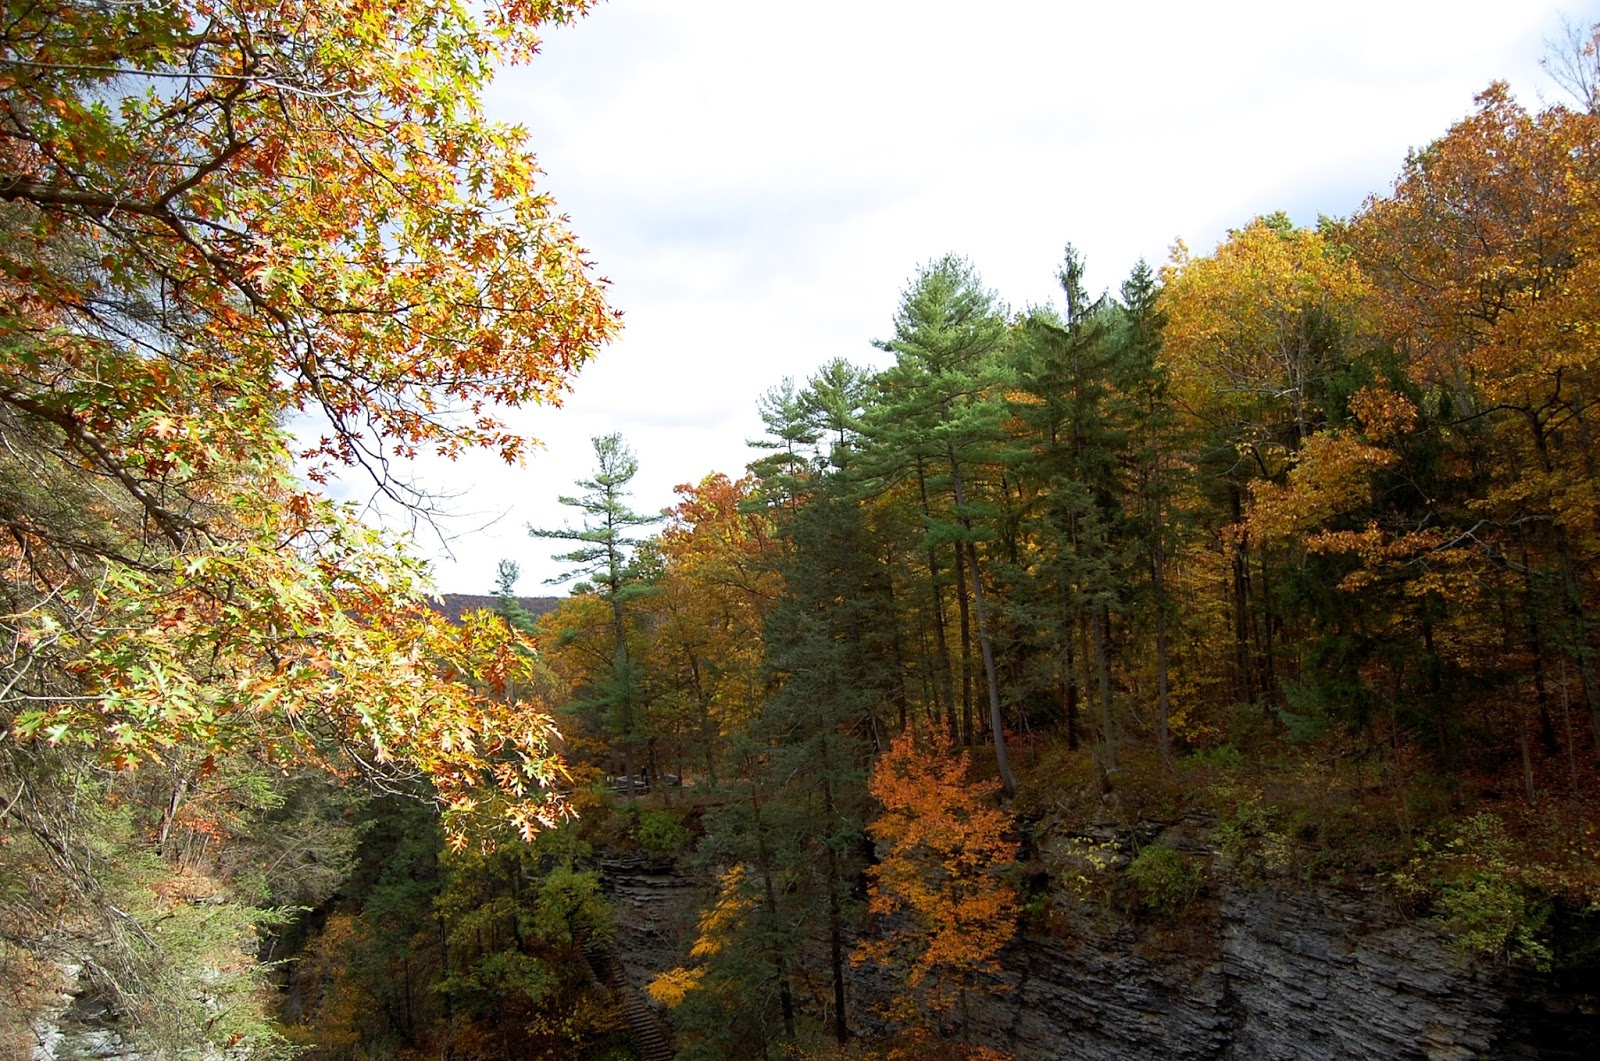 Fall foliage at Watkins Glen State Park in Upstate New York, Weekend Getaways